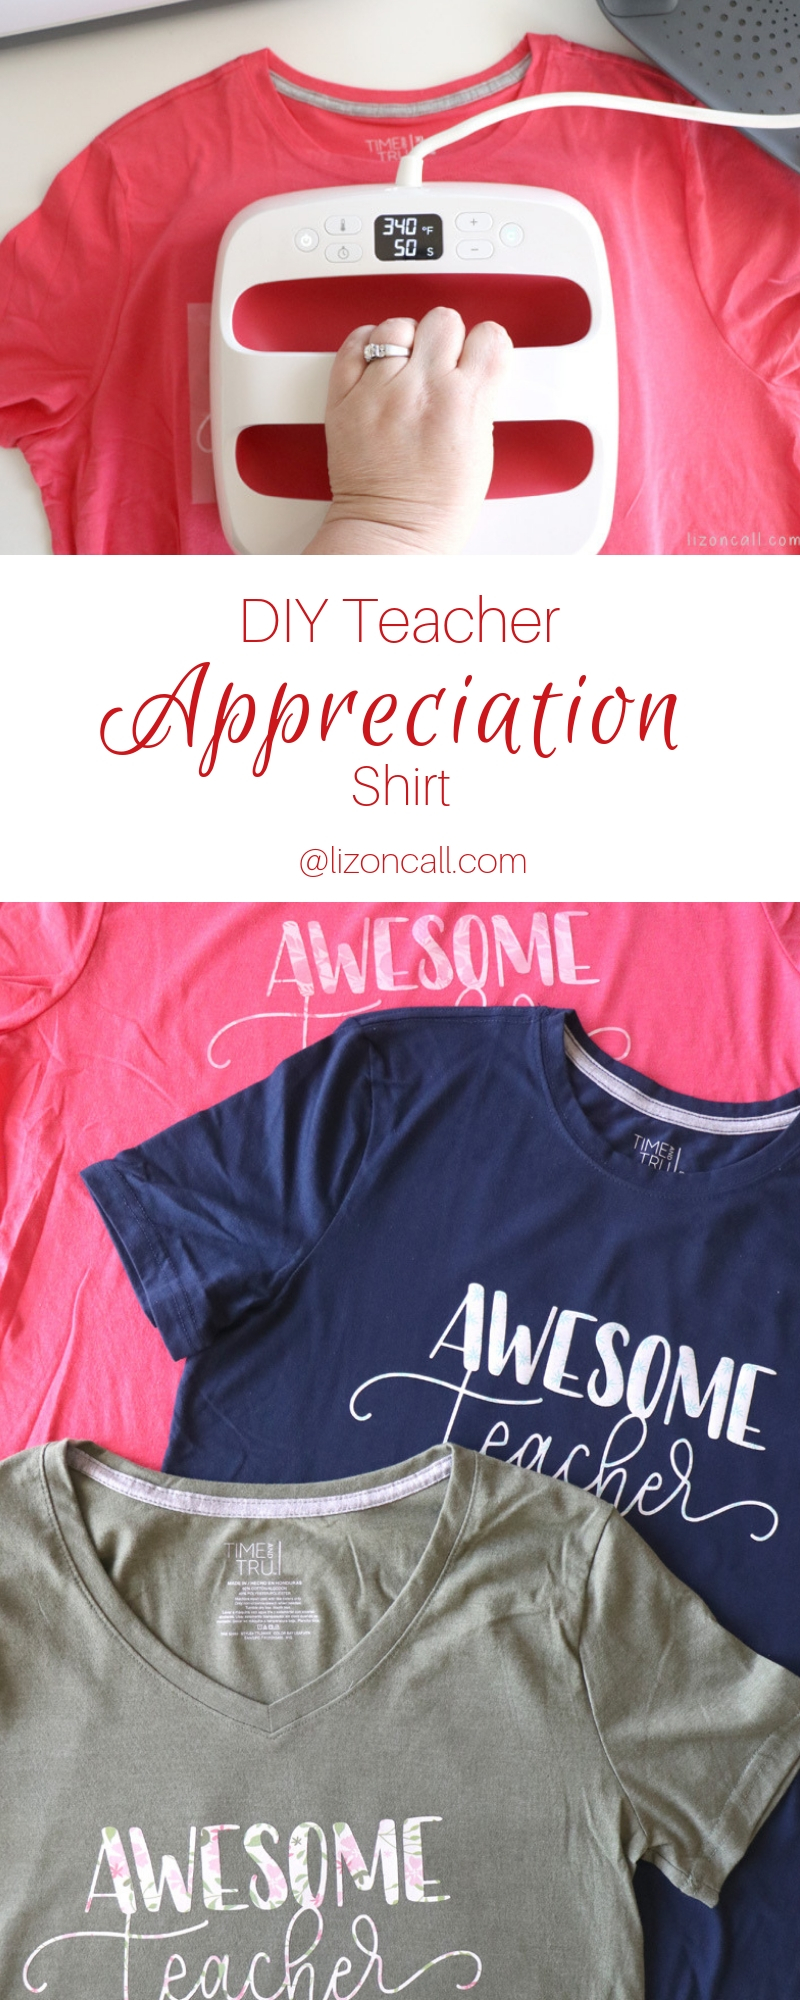 We made these DIY Teacher Appreciation Shirts for the teachers this year just in time for Teacher Appreciation Week, easy Teacher Appreciation gift.